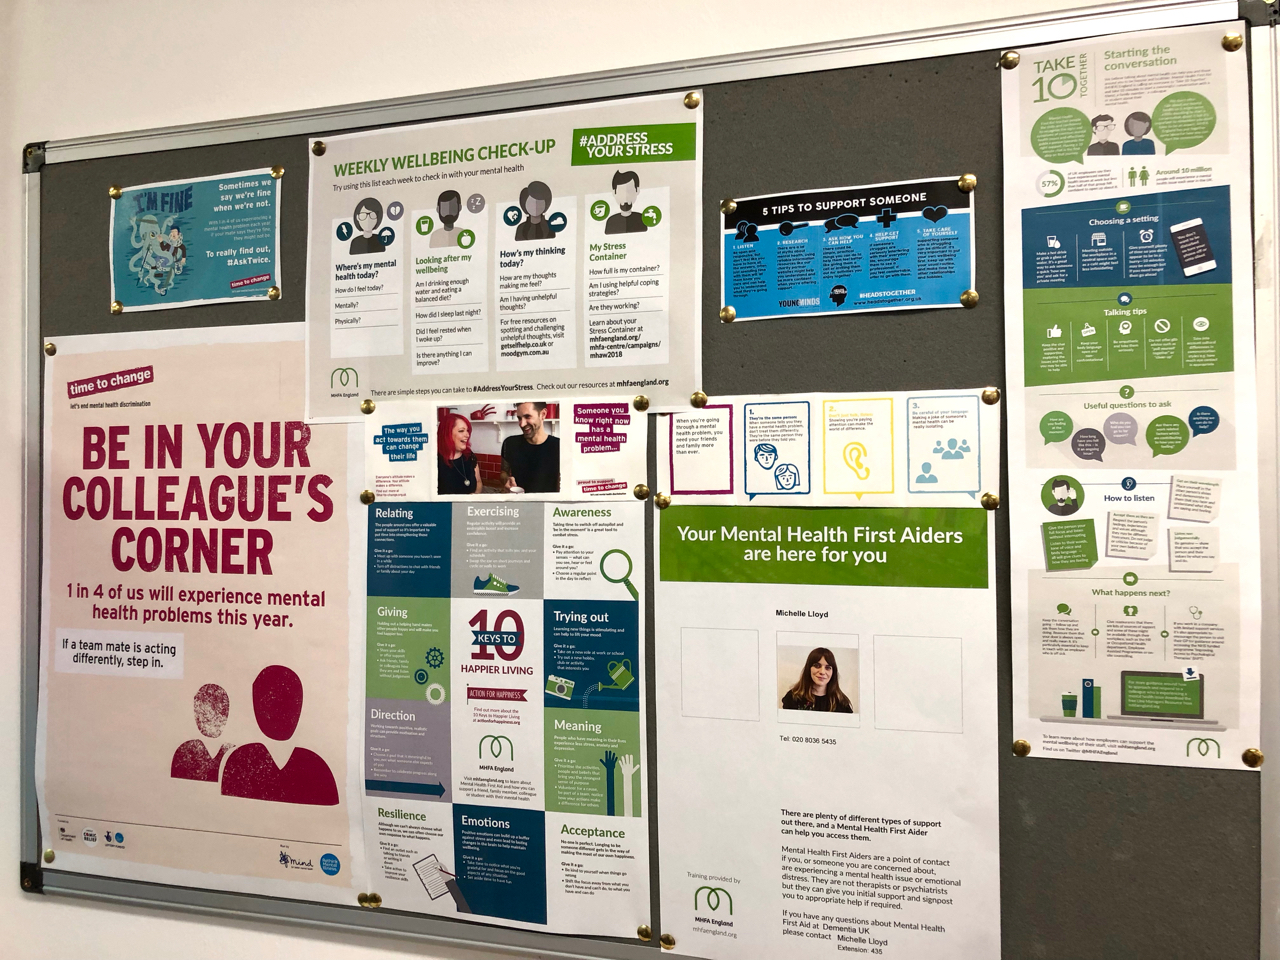 A noticeboard on a kitchen wall, containing posters and leaflets encouraging staff to look out for their colleagues and have conversations about mental health, and informing them who the trained mental health first aider is